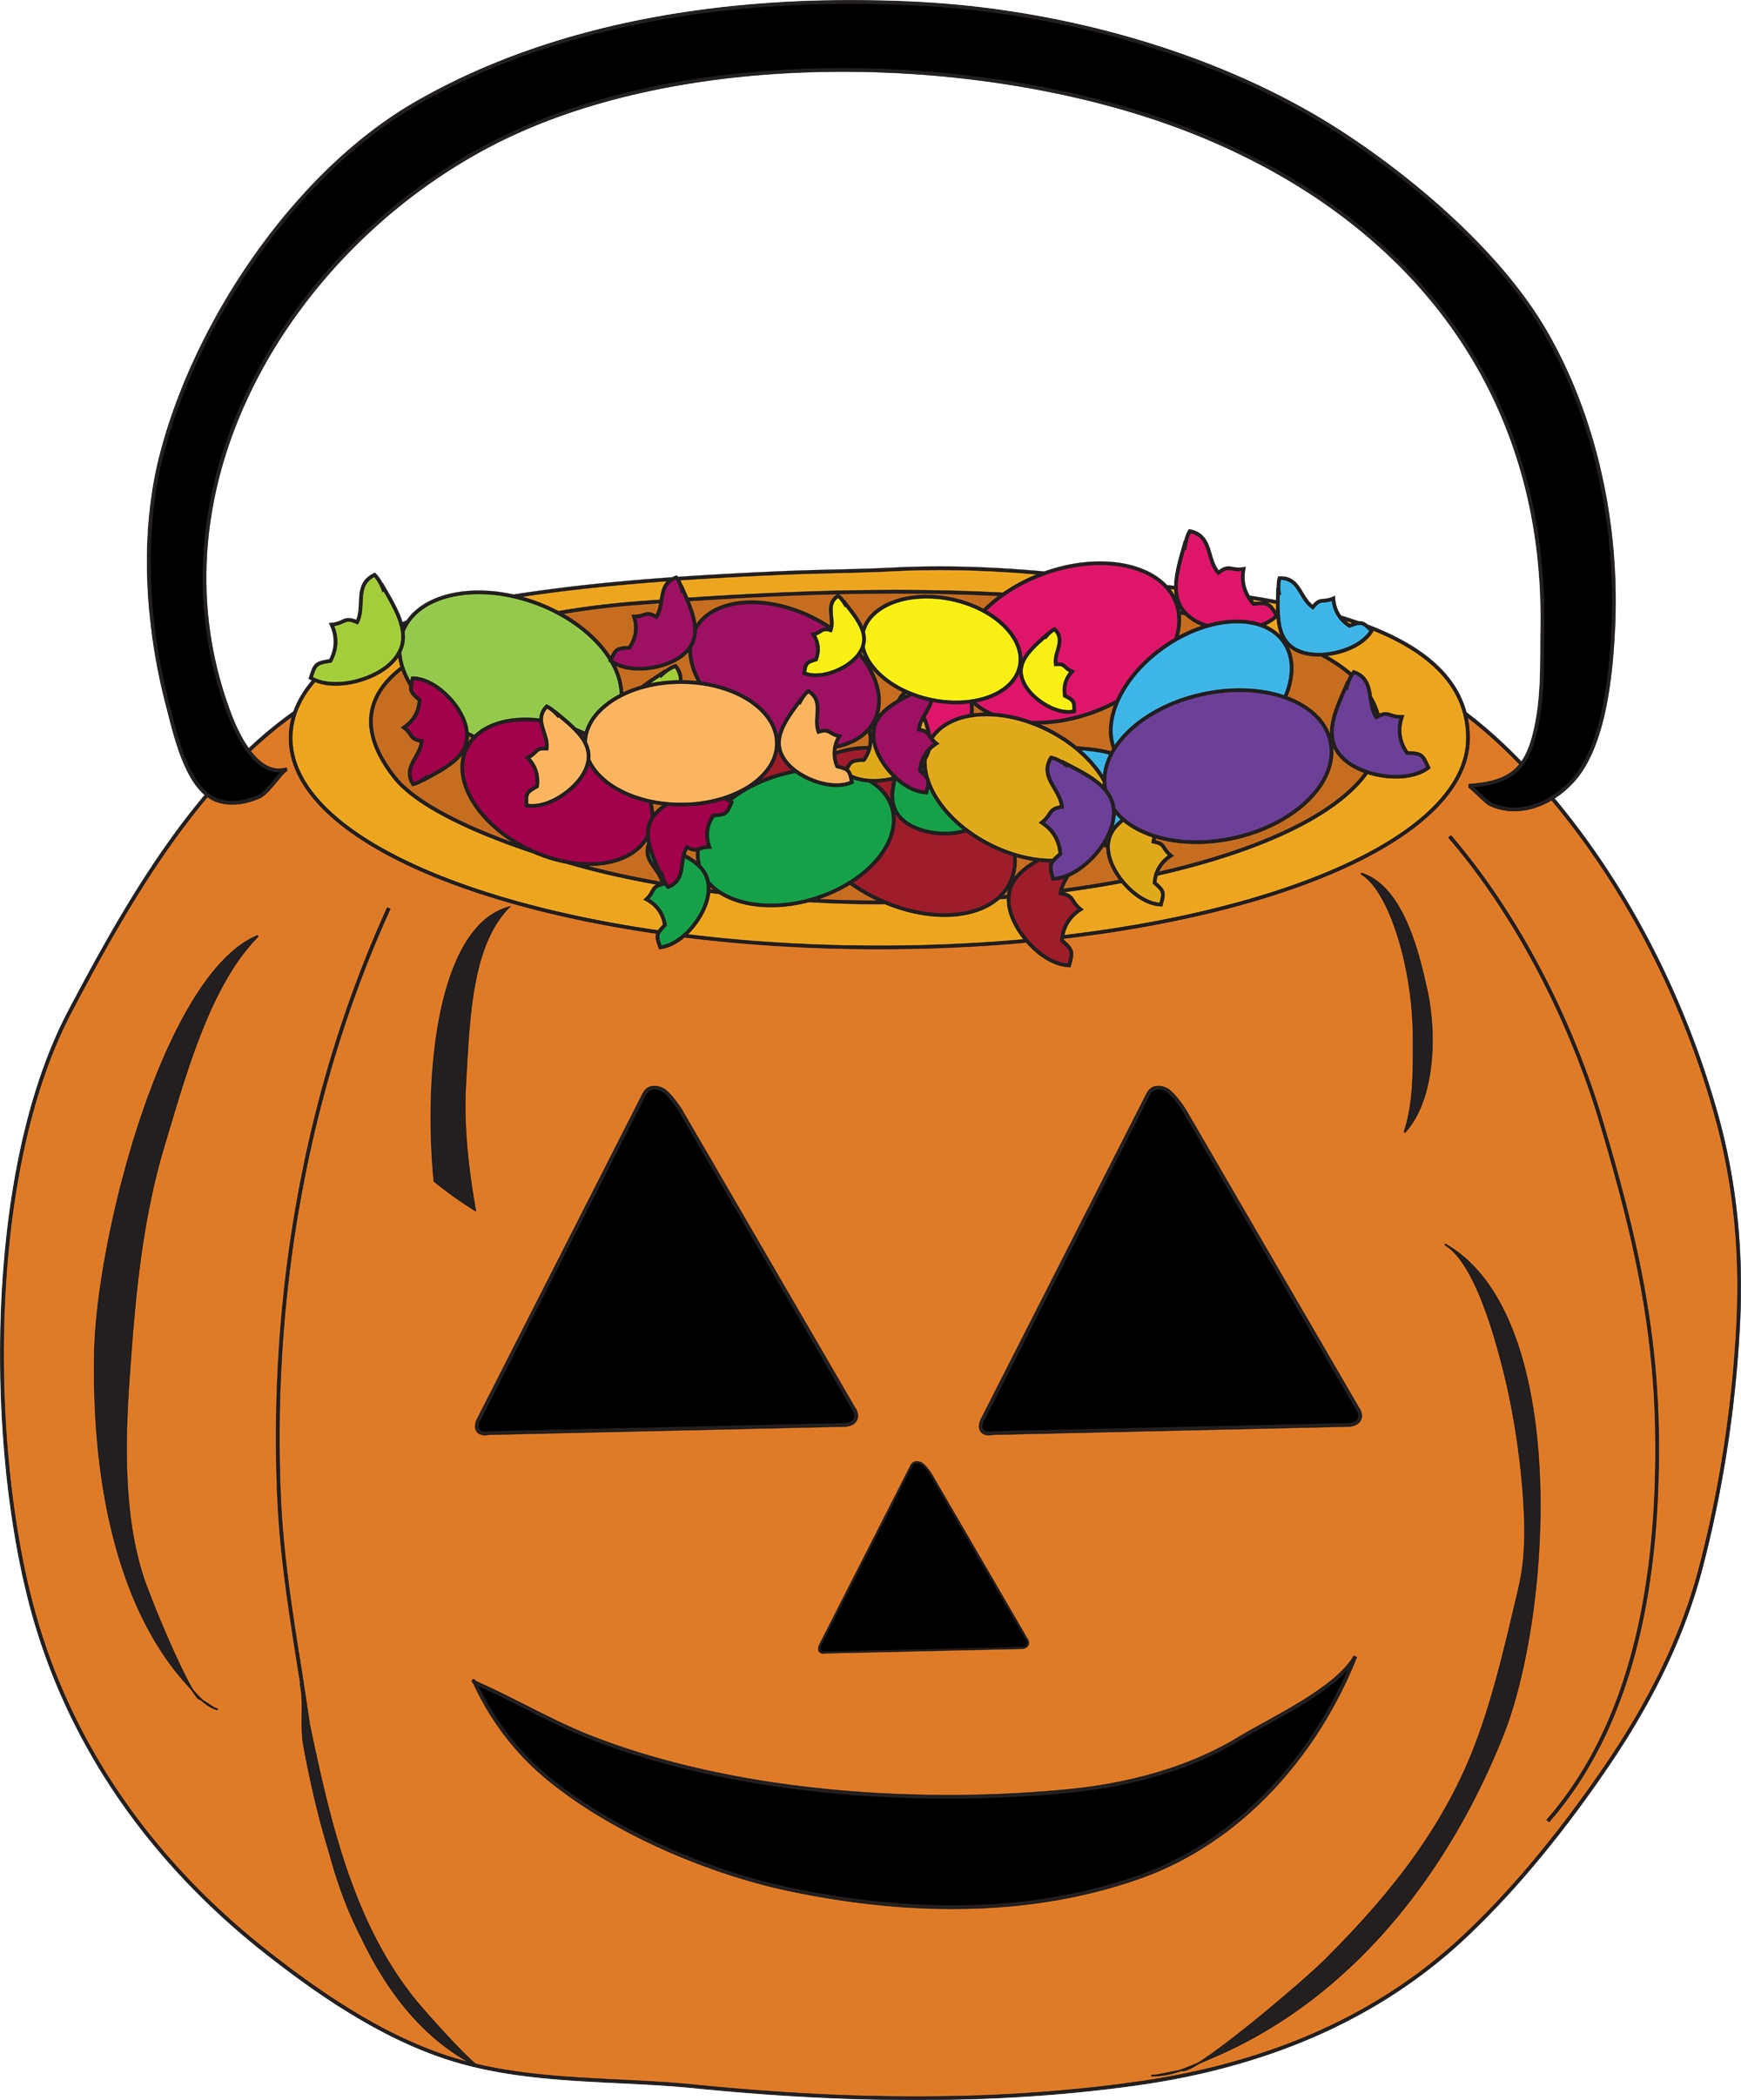 Candy bowls clipart freeuse stock Free Candy Bowl Cliparts, Download Free Clip Art, Free Clip Art on ... freeuse stock